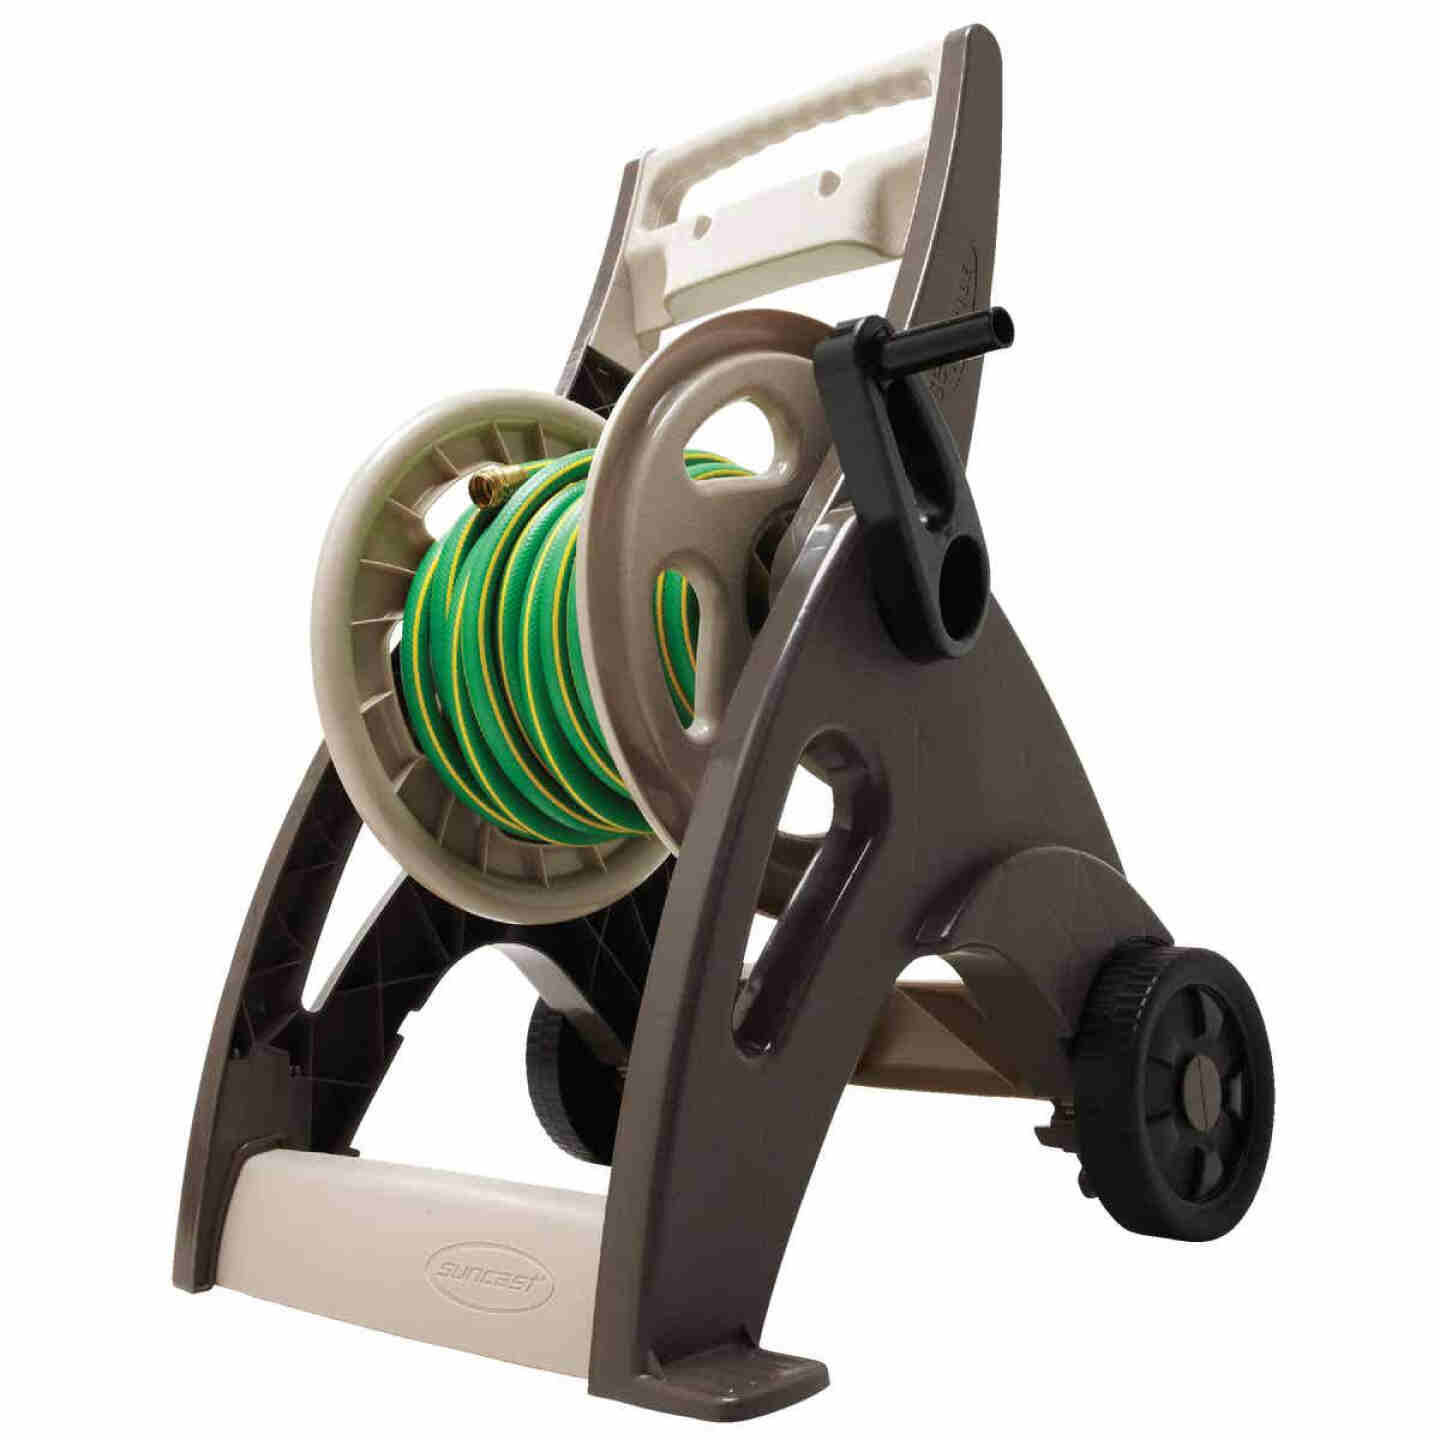 Suncast 175 Ft. x 5/8 In. Bronze Hosemobile Resin Hose Reel Image 7